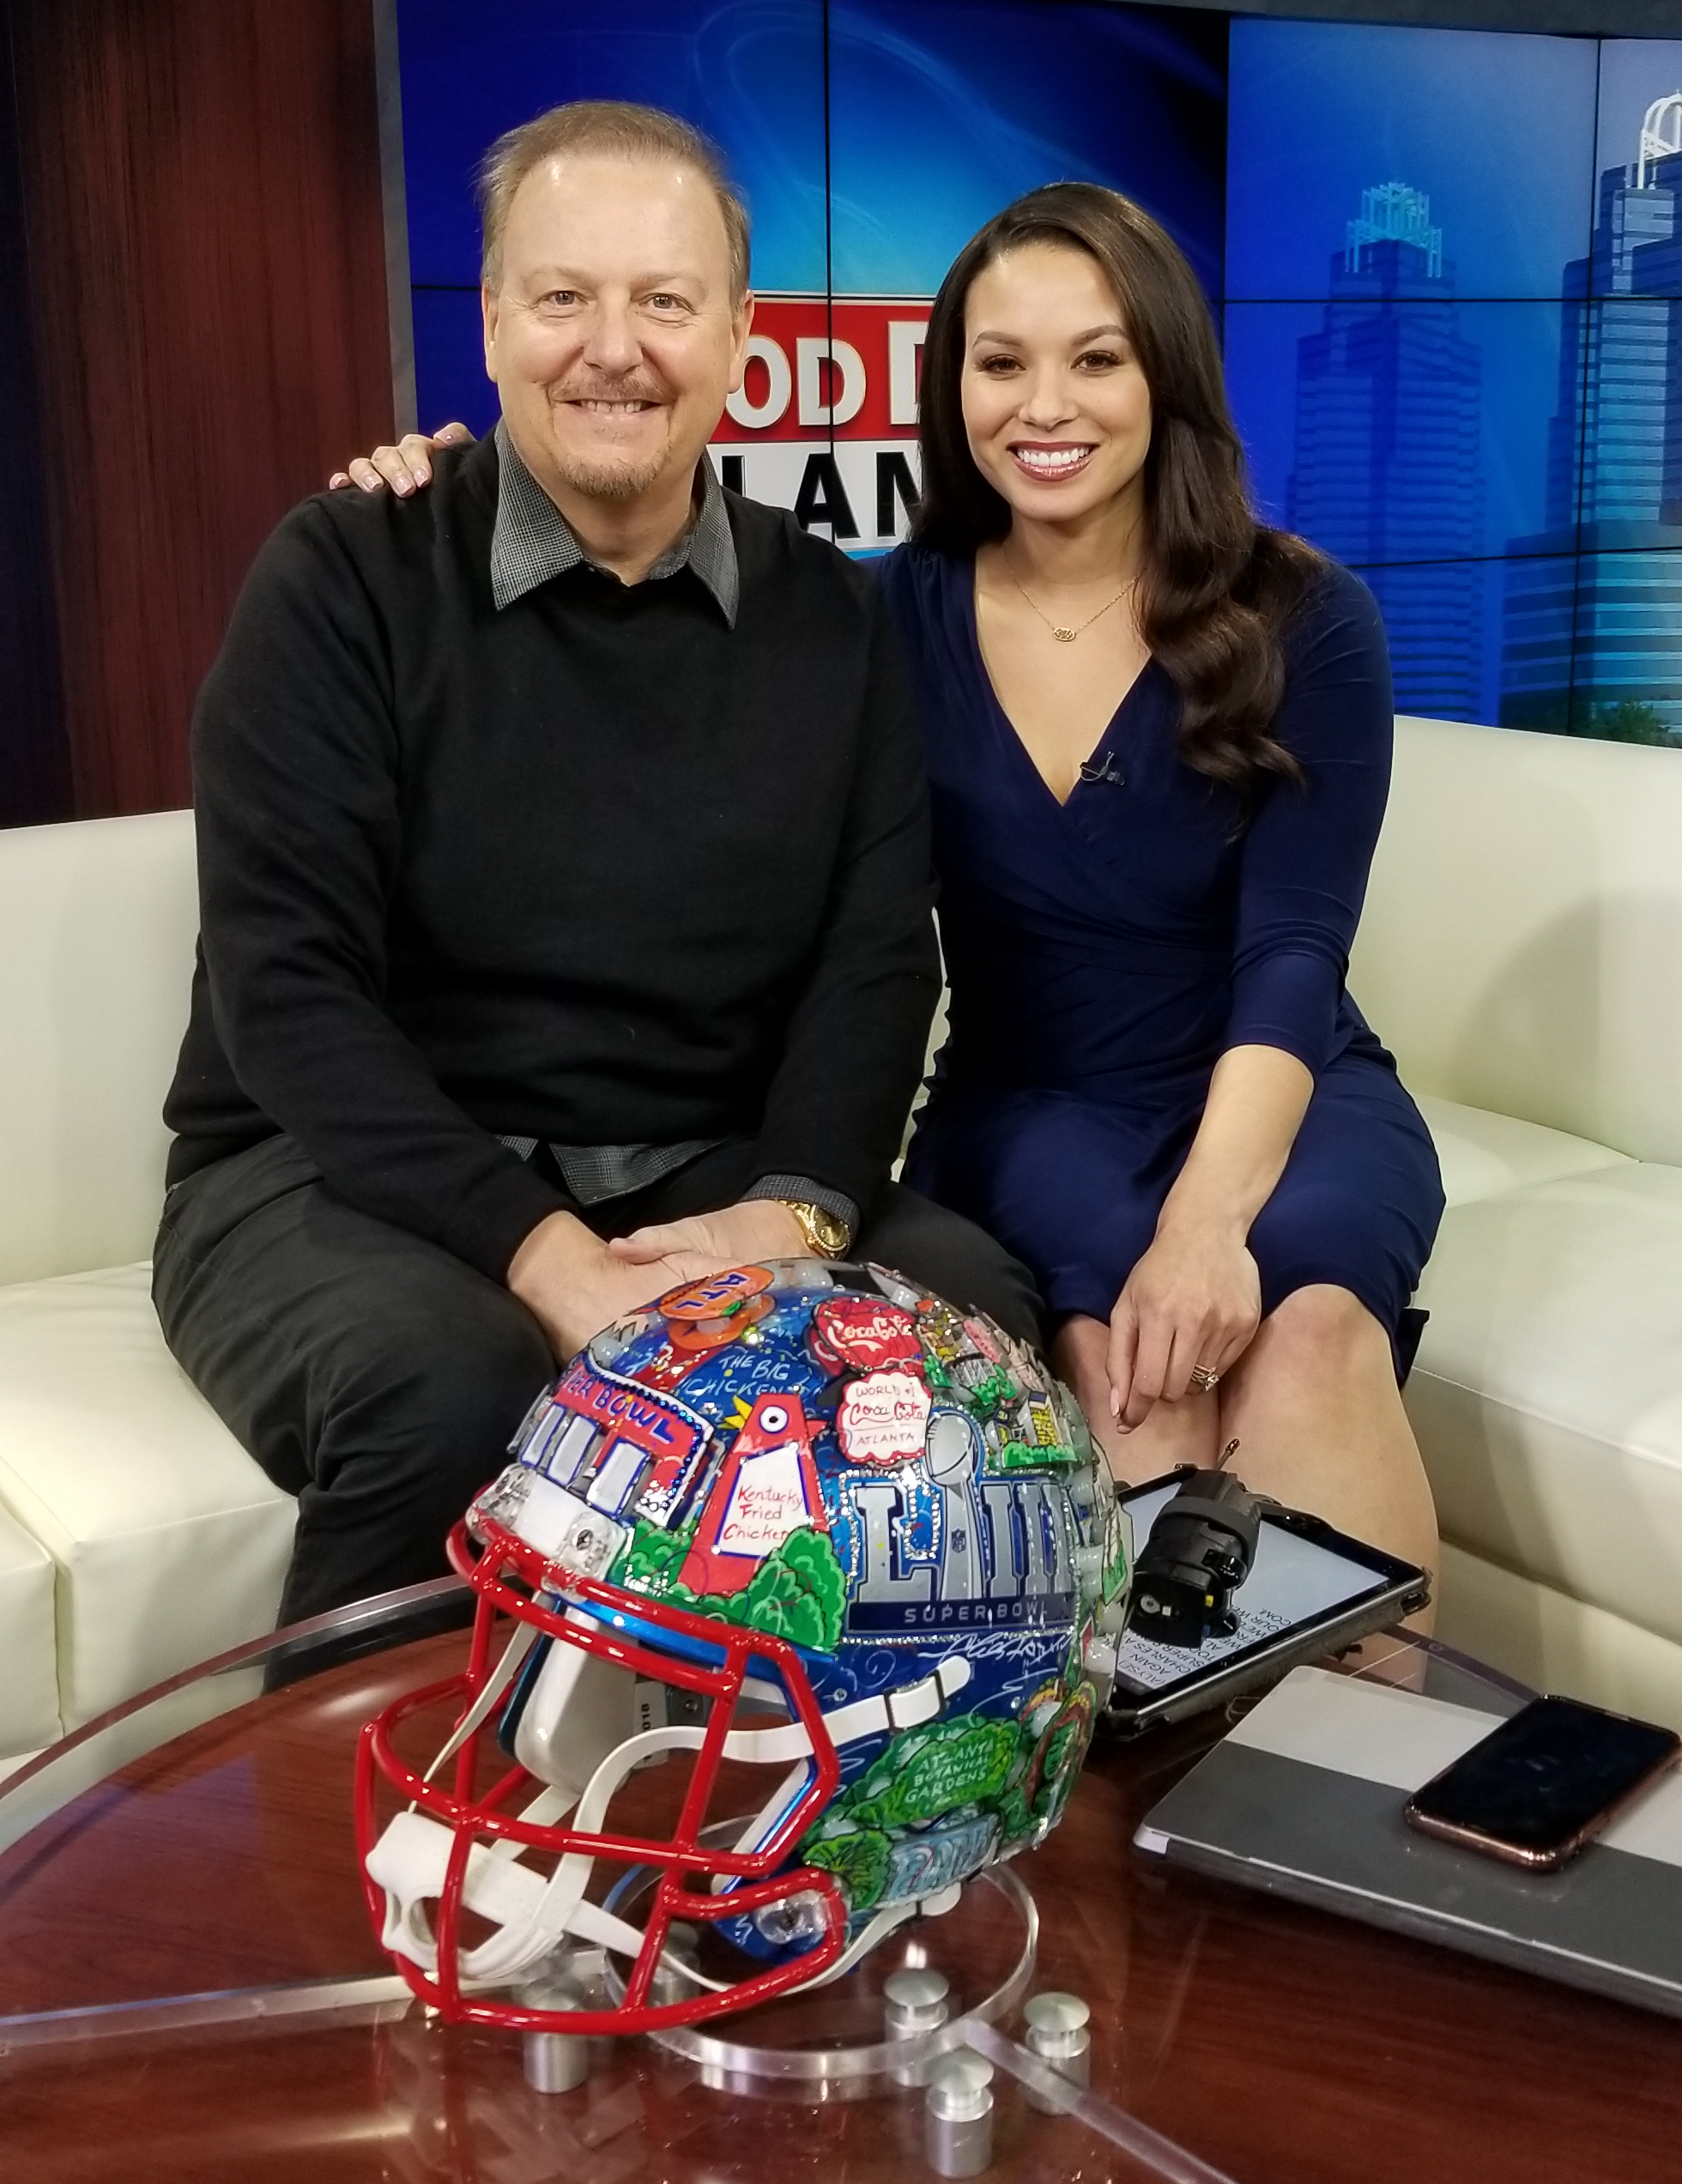 Charles Fazzino on Fox 5 Good Day Atlanta posing in front of his helmet artwork for Super Bowl LIII